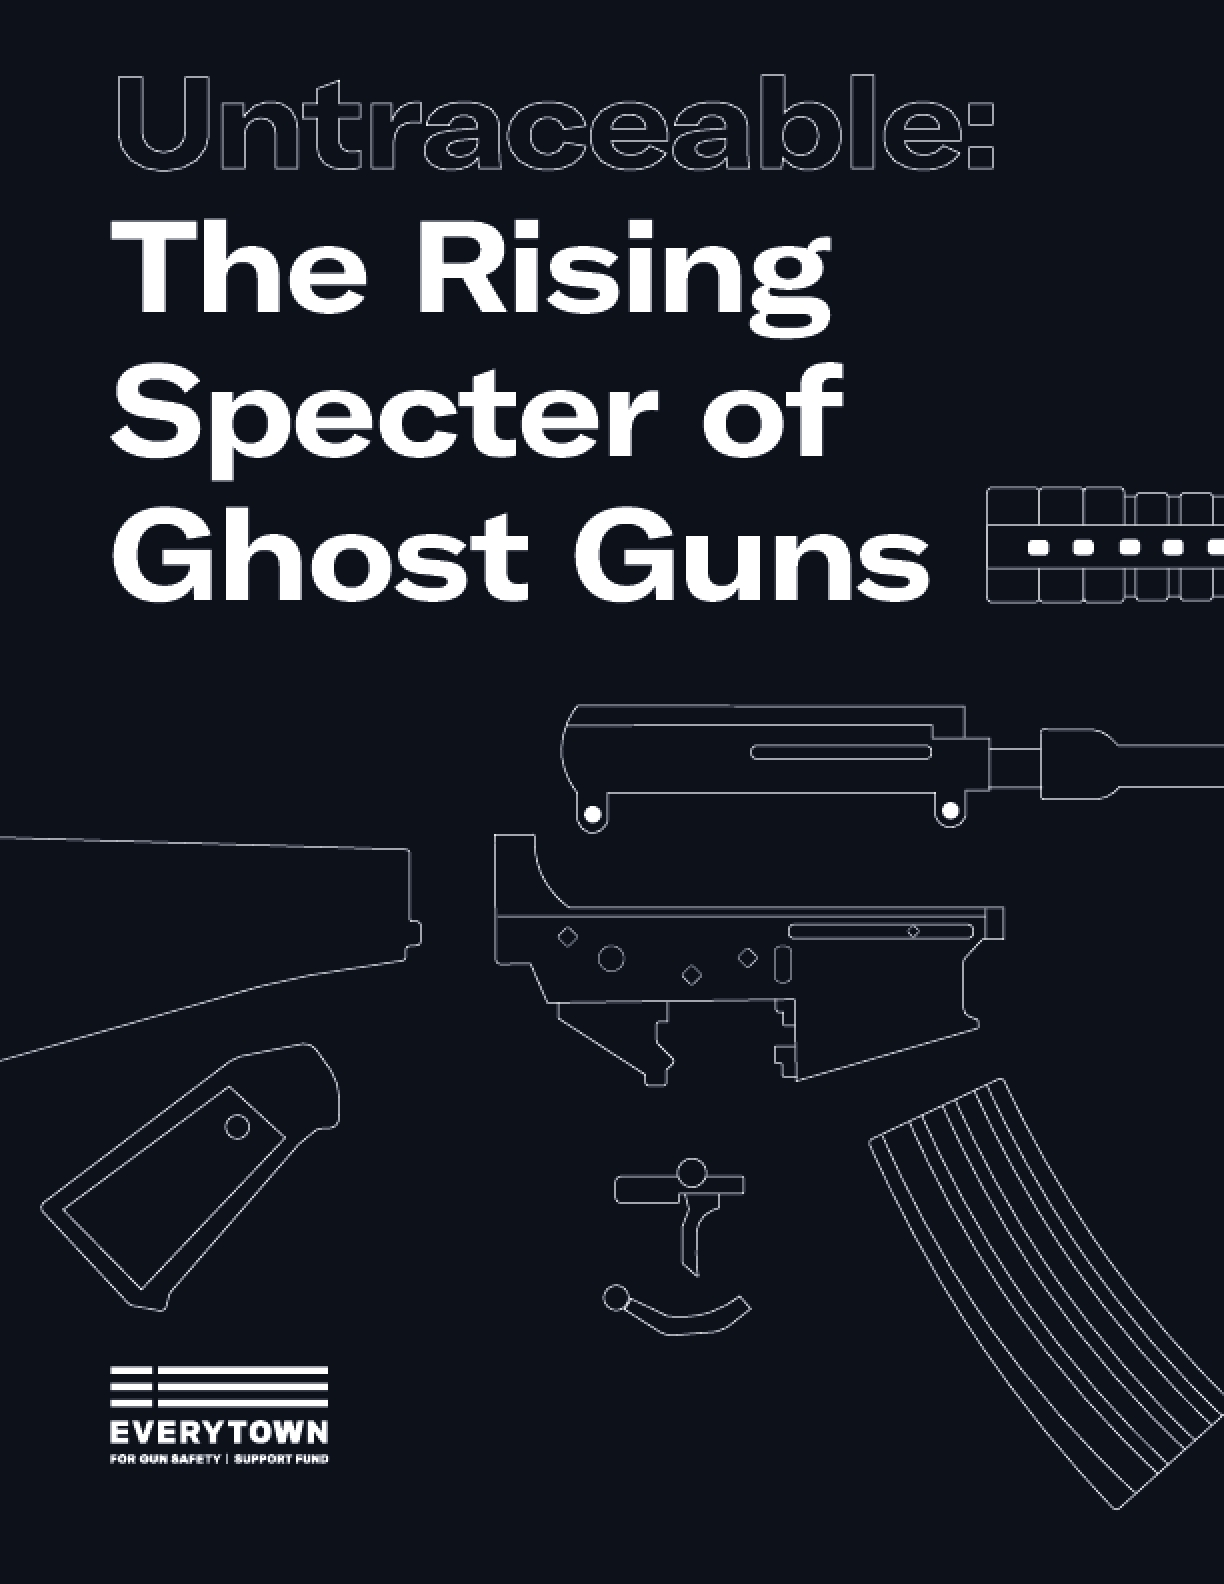 Untraceable: The Rising Specter of Ghost Guns